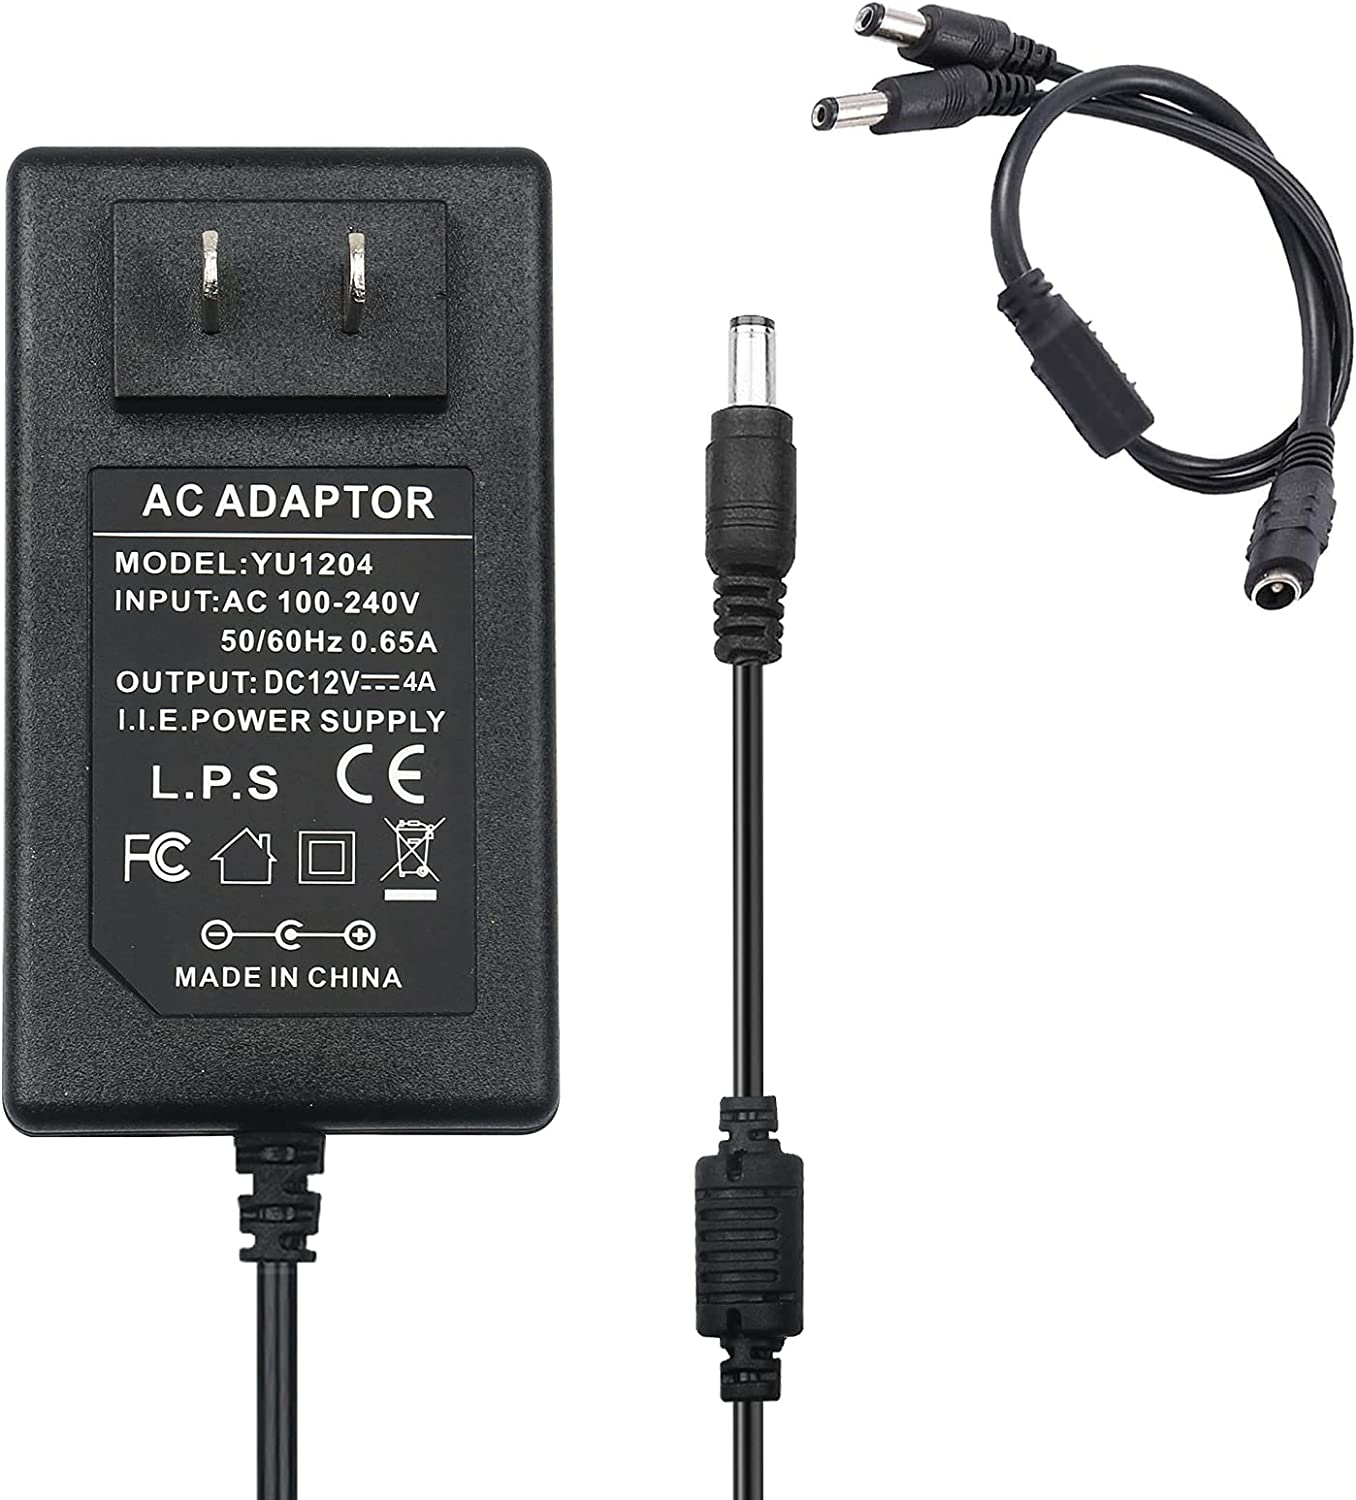 LeTaoXing AC DC 12V 4A Switching Power Supply 48W Transformers with 1 Female to 2 Male DC Splitter Cable 2 Way 2-Way 2CH Splitter Bundle